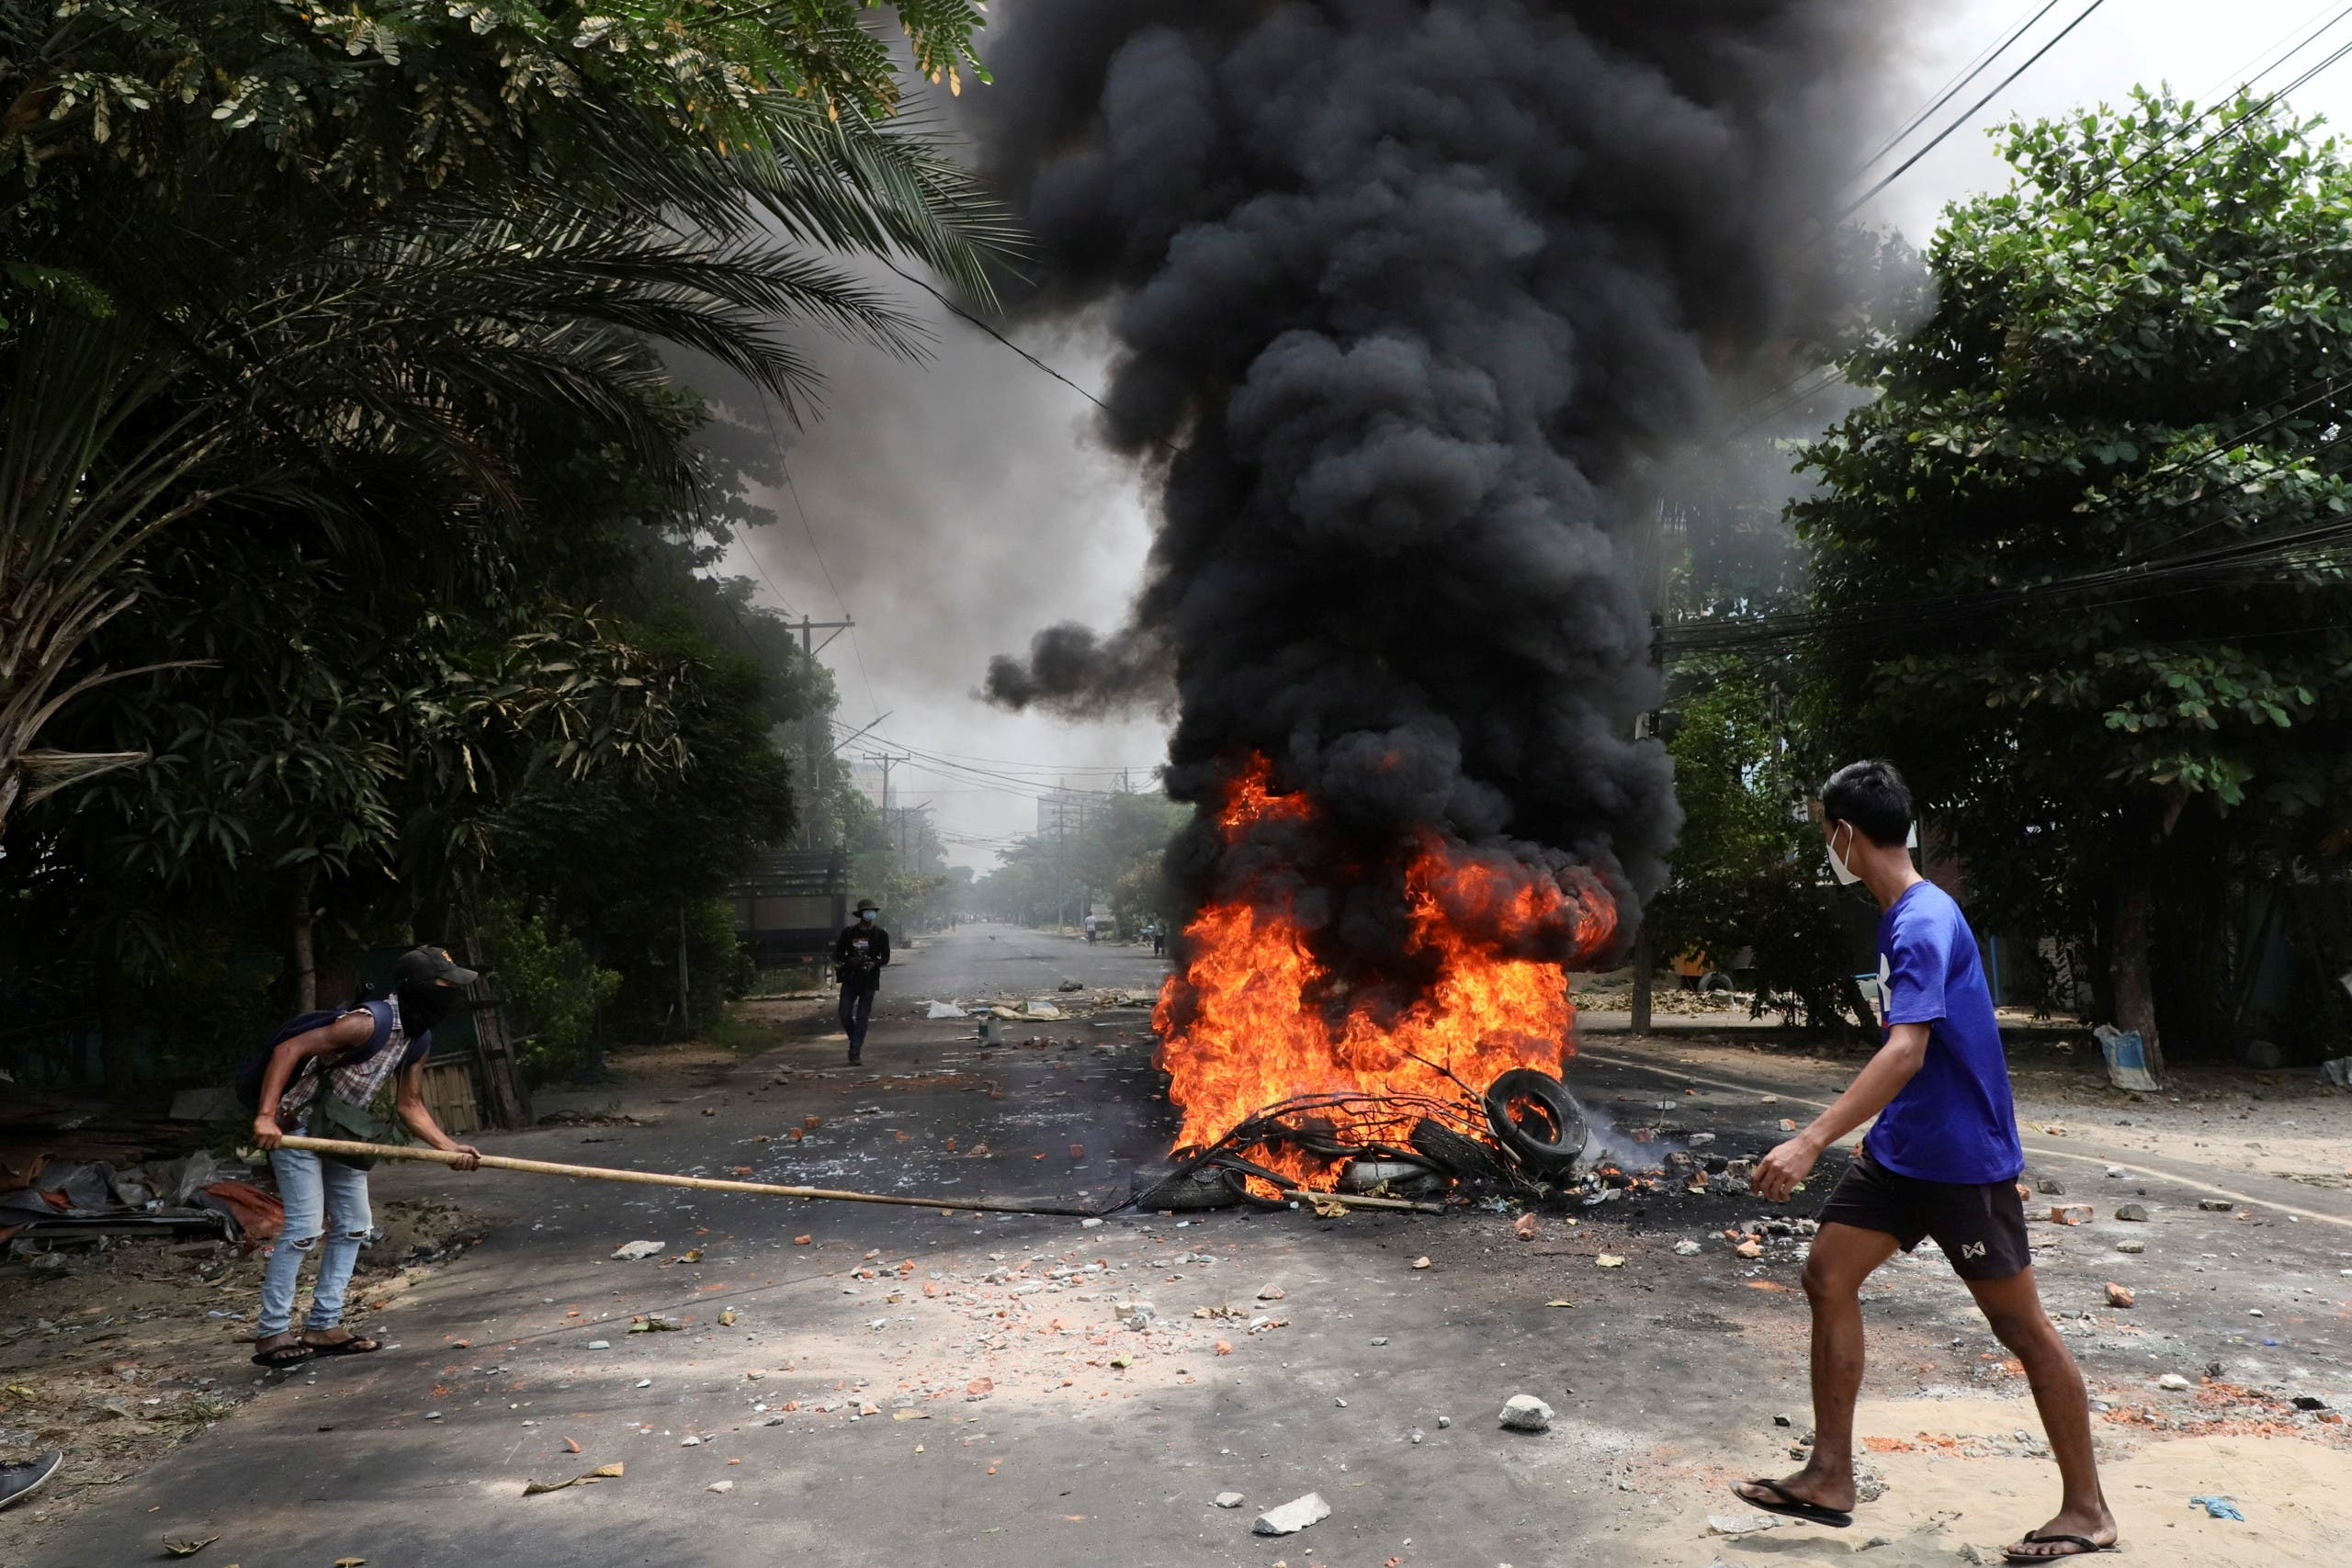 An anti-coup protester walks past burning tires after activists launched a garbage strike against the military rule, in Yangon, Myanmar March 30, 2021. (File photo: Reuters)